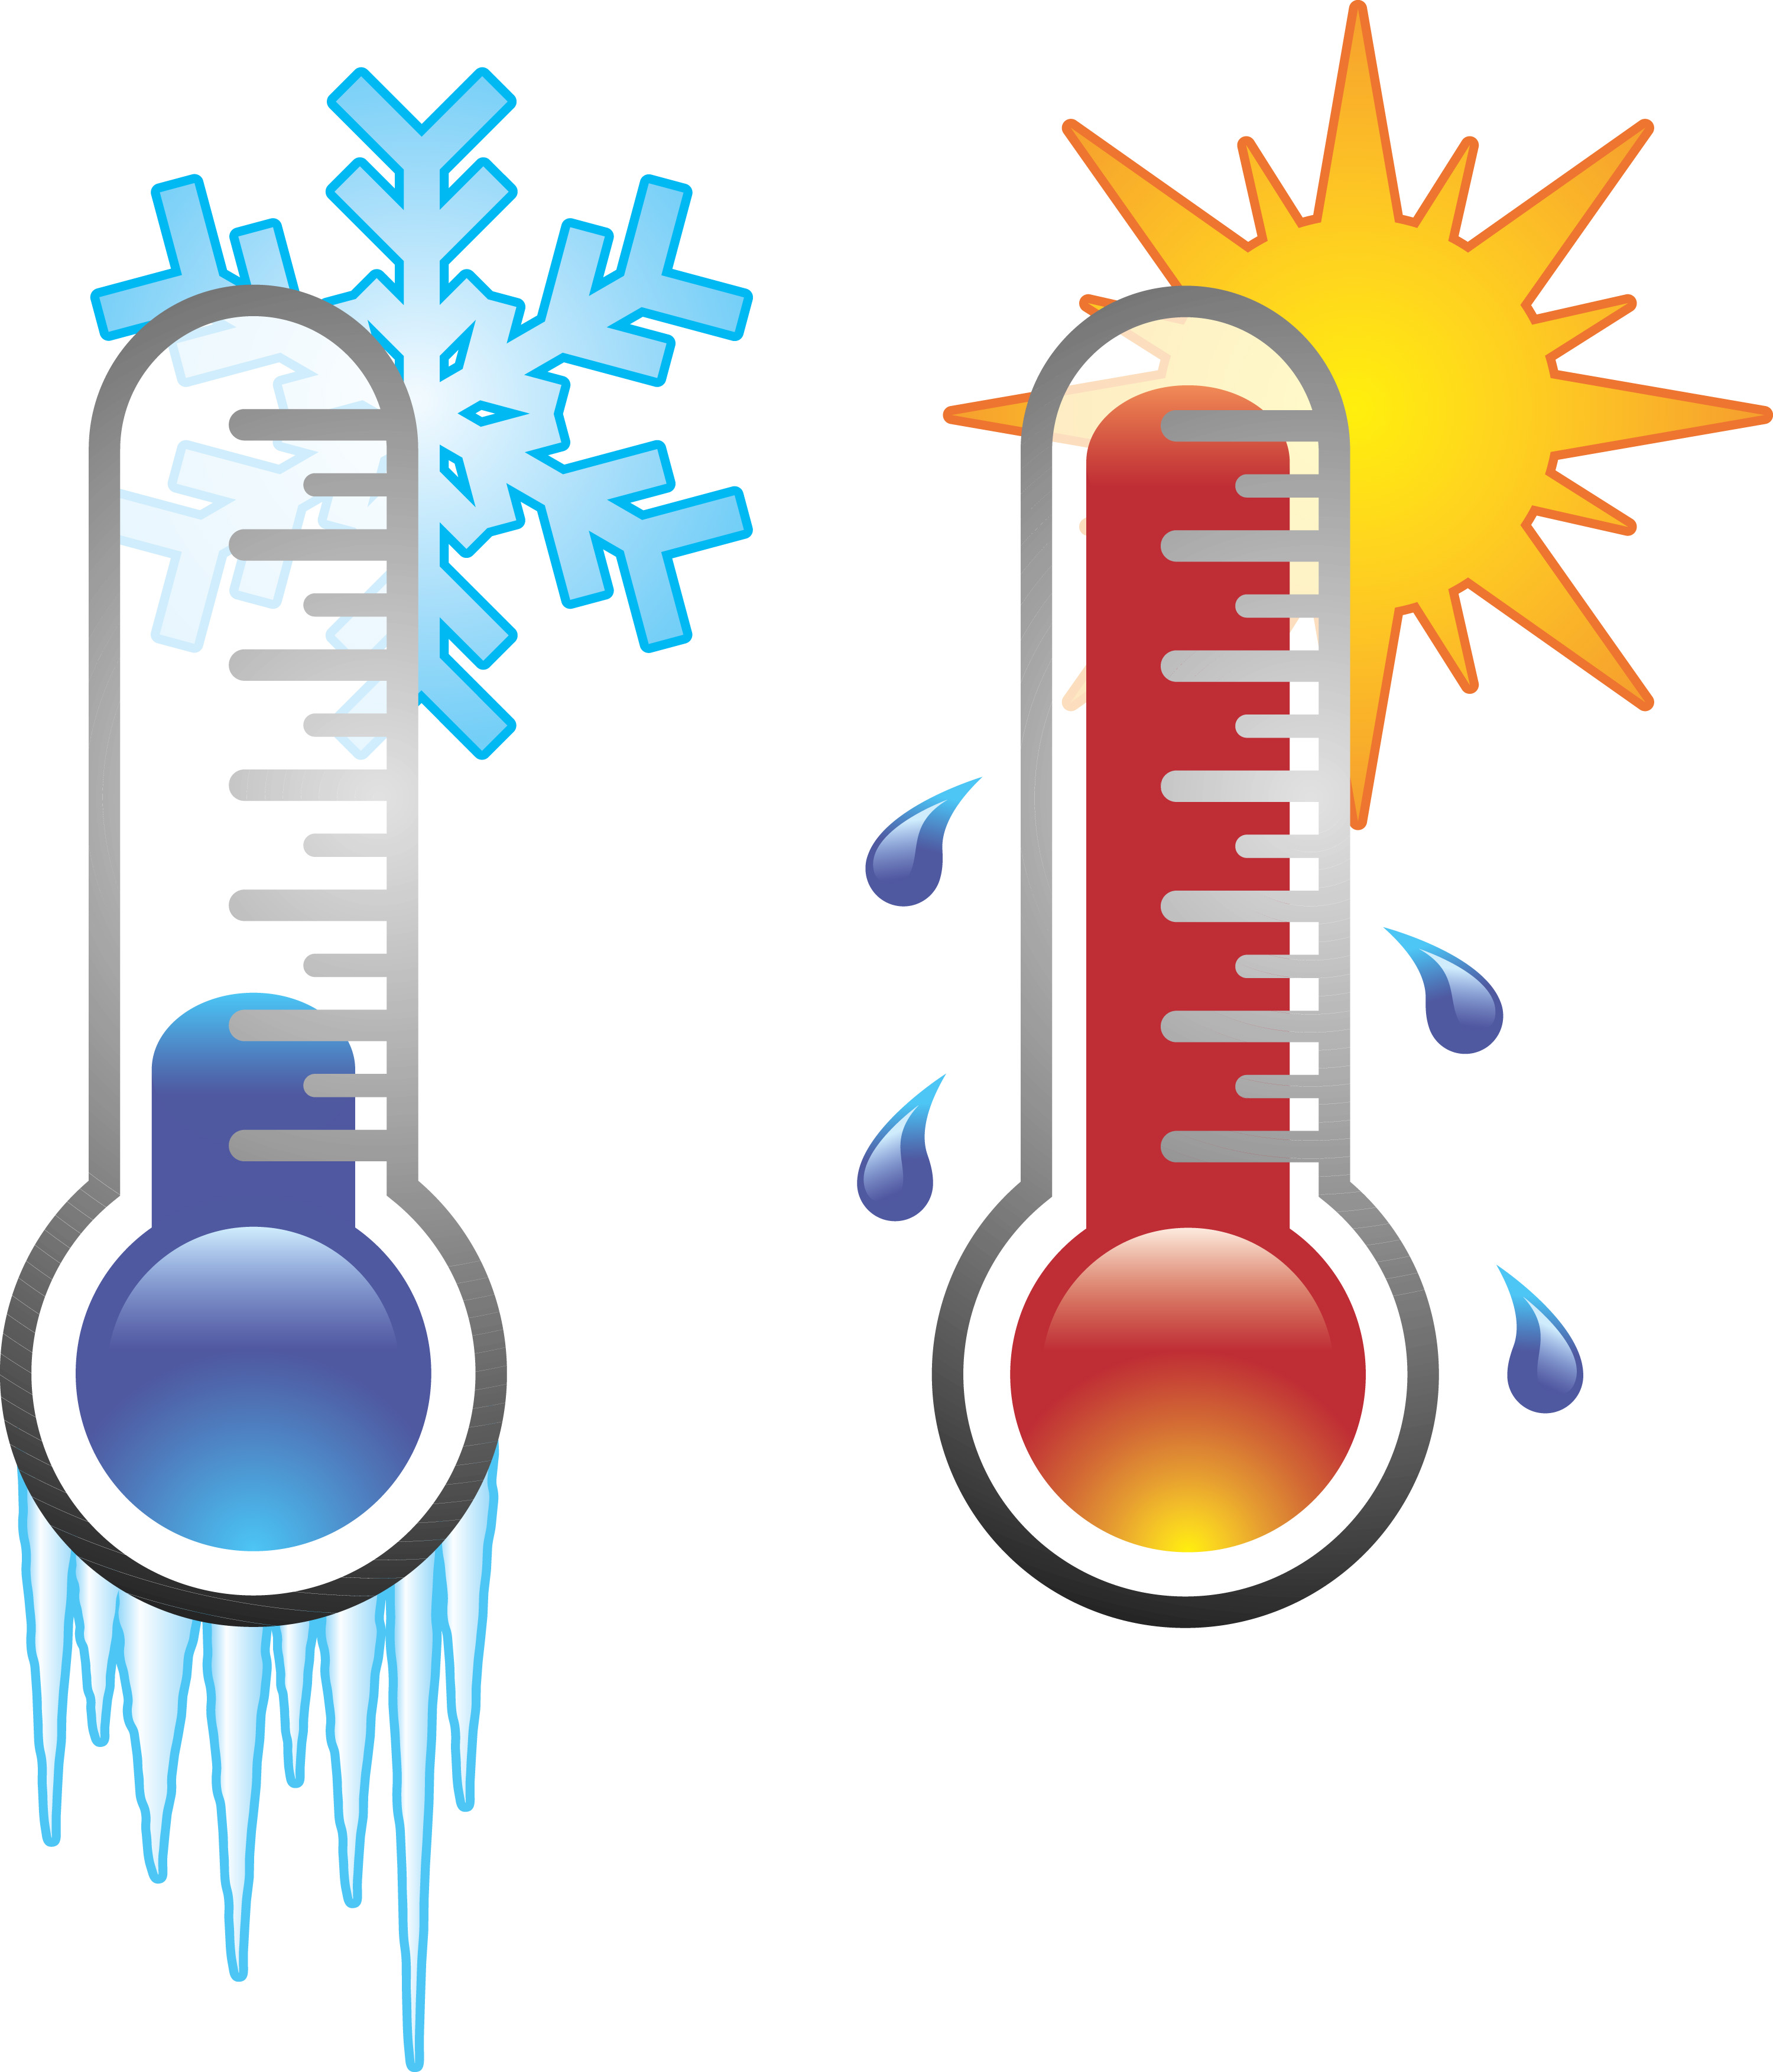 Fundraising thermometer clip art free clipart images 4.